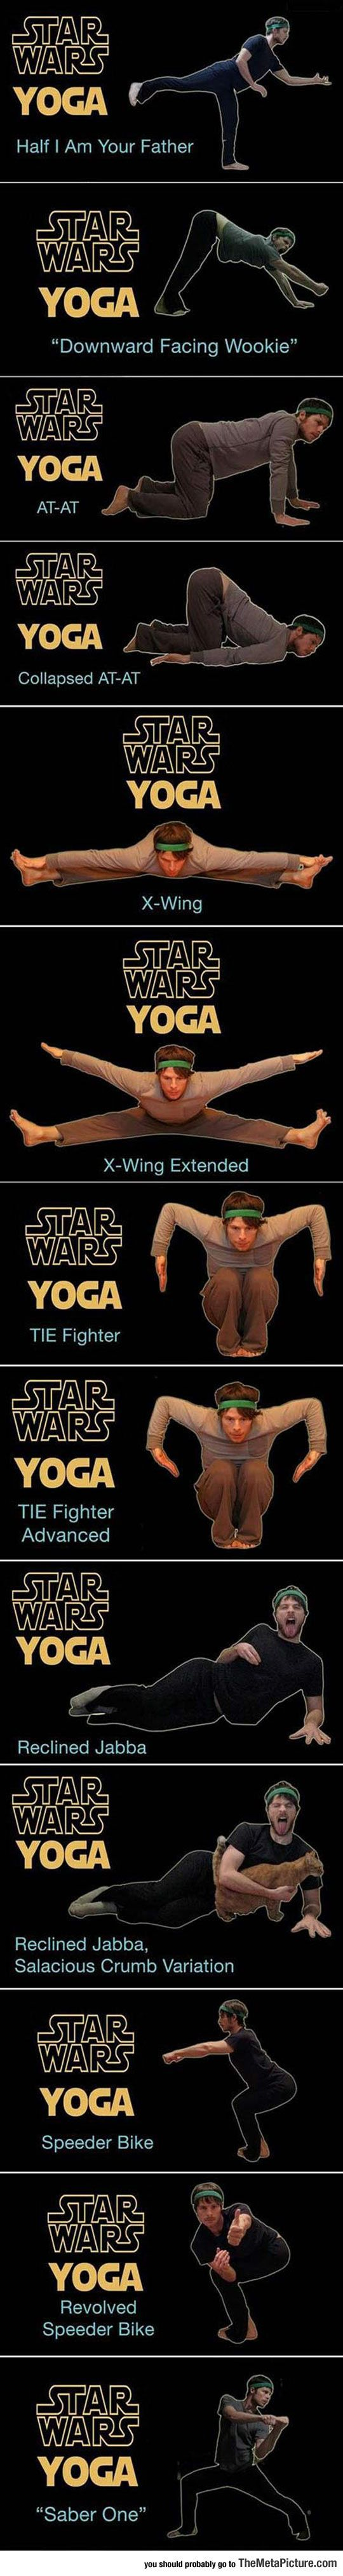 Star Wars Yoga Is Best Yoga